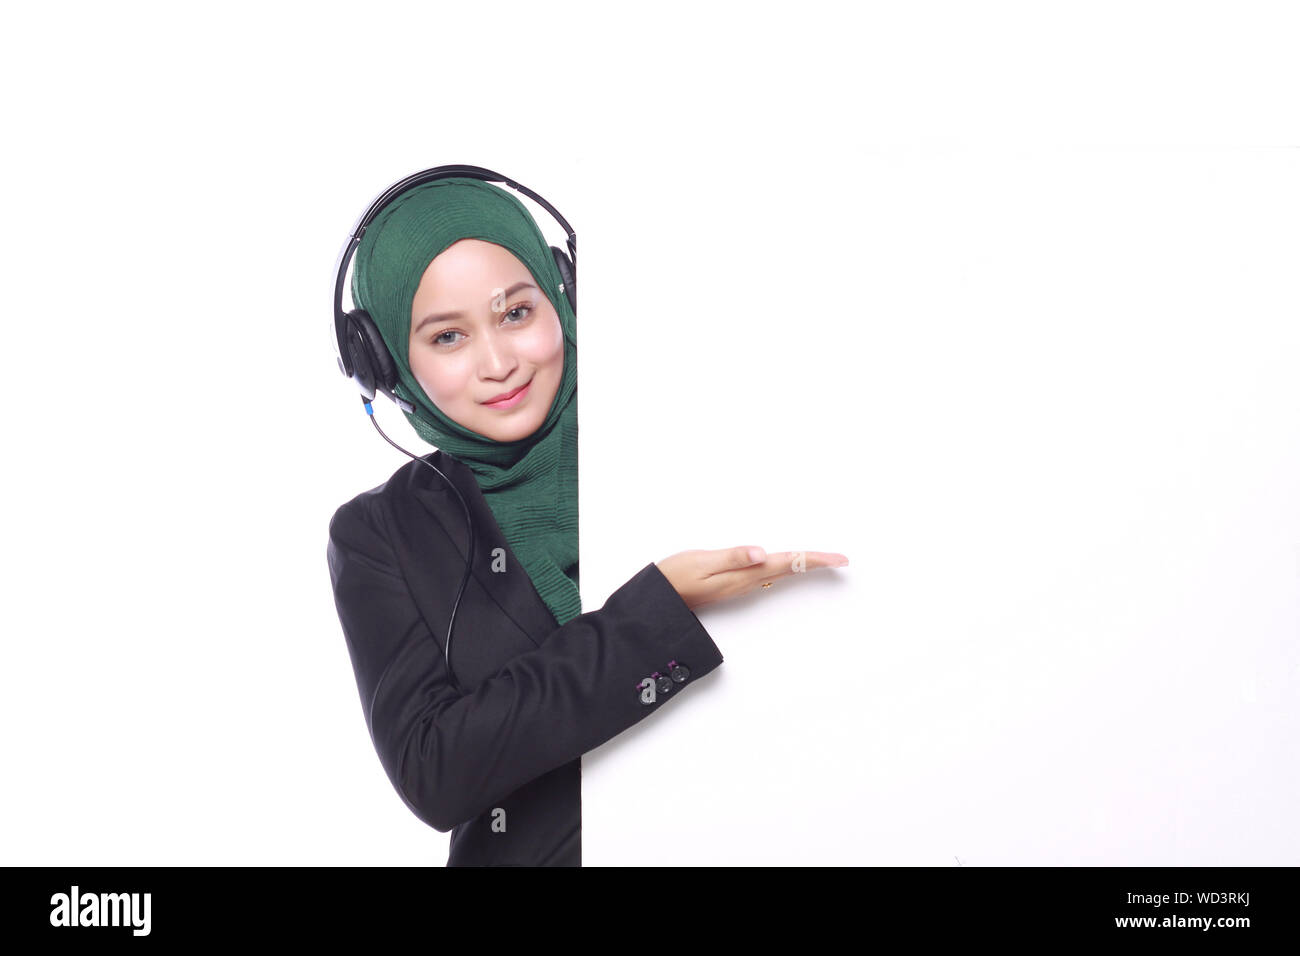 Portrait Of Confident Businesswoman With Headphones Wearing Hijab Against White Background Stock Photo